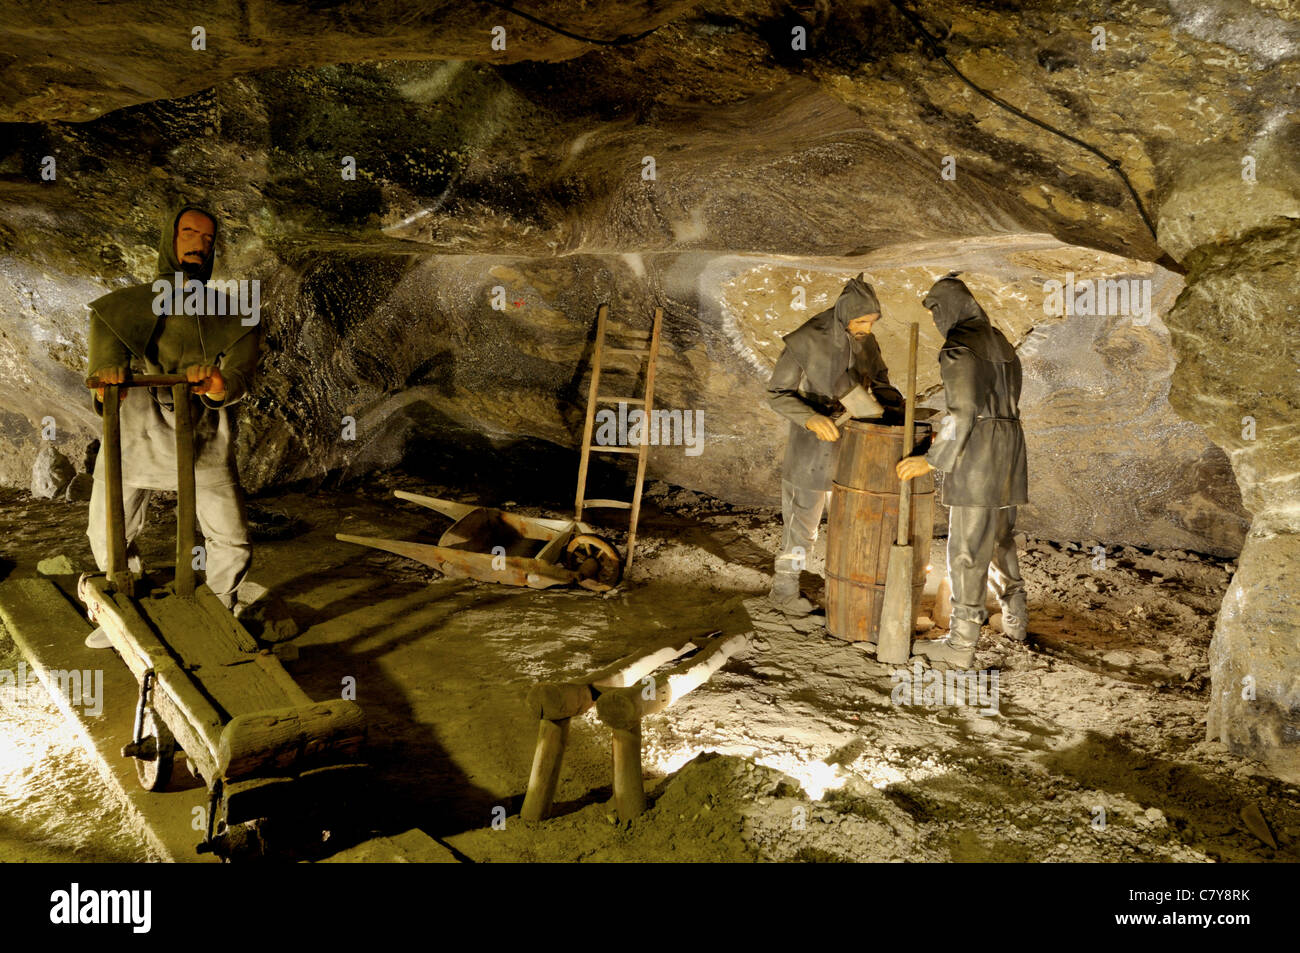 The Wieliczka Salt Mine historical underground machinery and mining methods used to extract salt rock from the mine - Stock Image